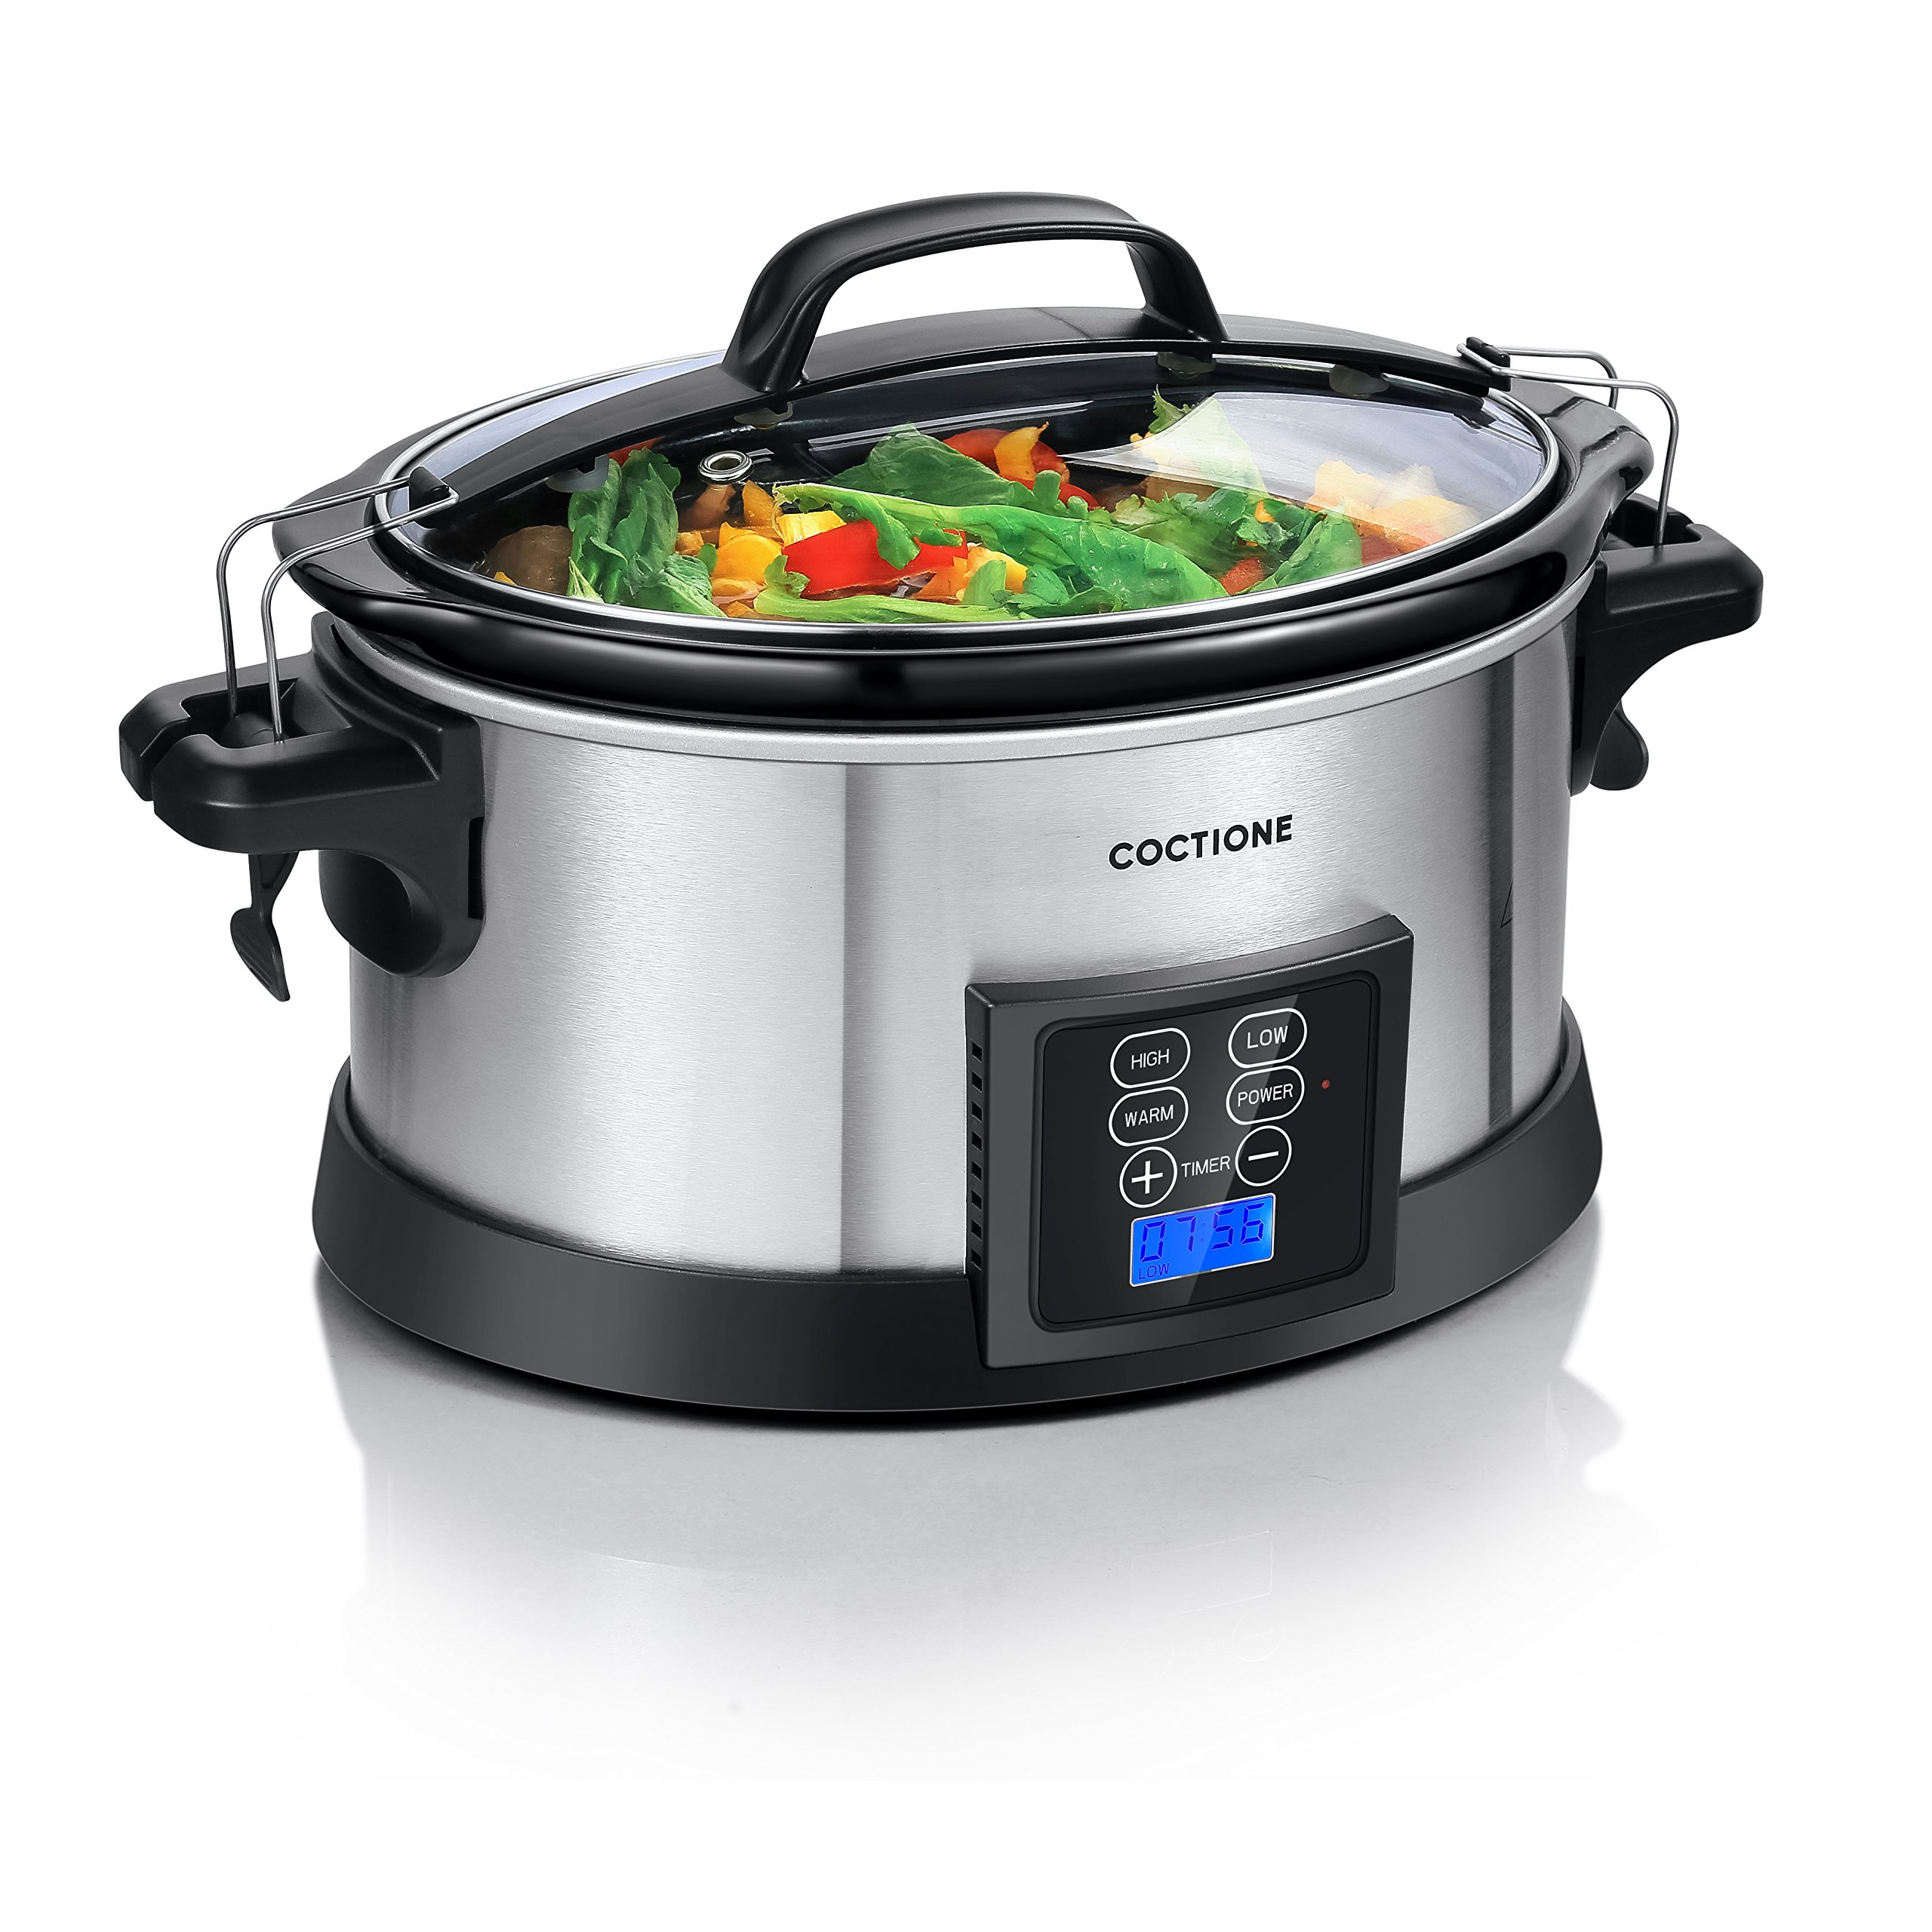 COCTIONE Slow Cooker 6 Quart Oval Shaped Carry Cooker, Electric Programmable LCD Digital Timer Auto Shut Off Cook with Removable Ceramic Cooking Pot & Latch Lock Lid and Stainless Steel Finish